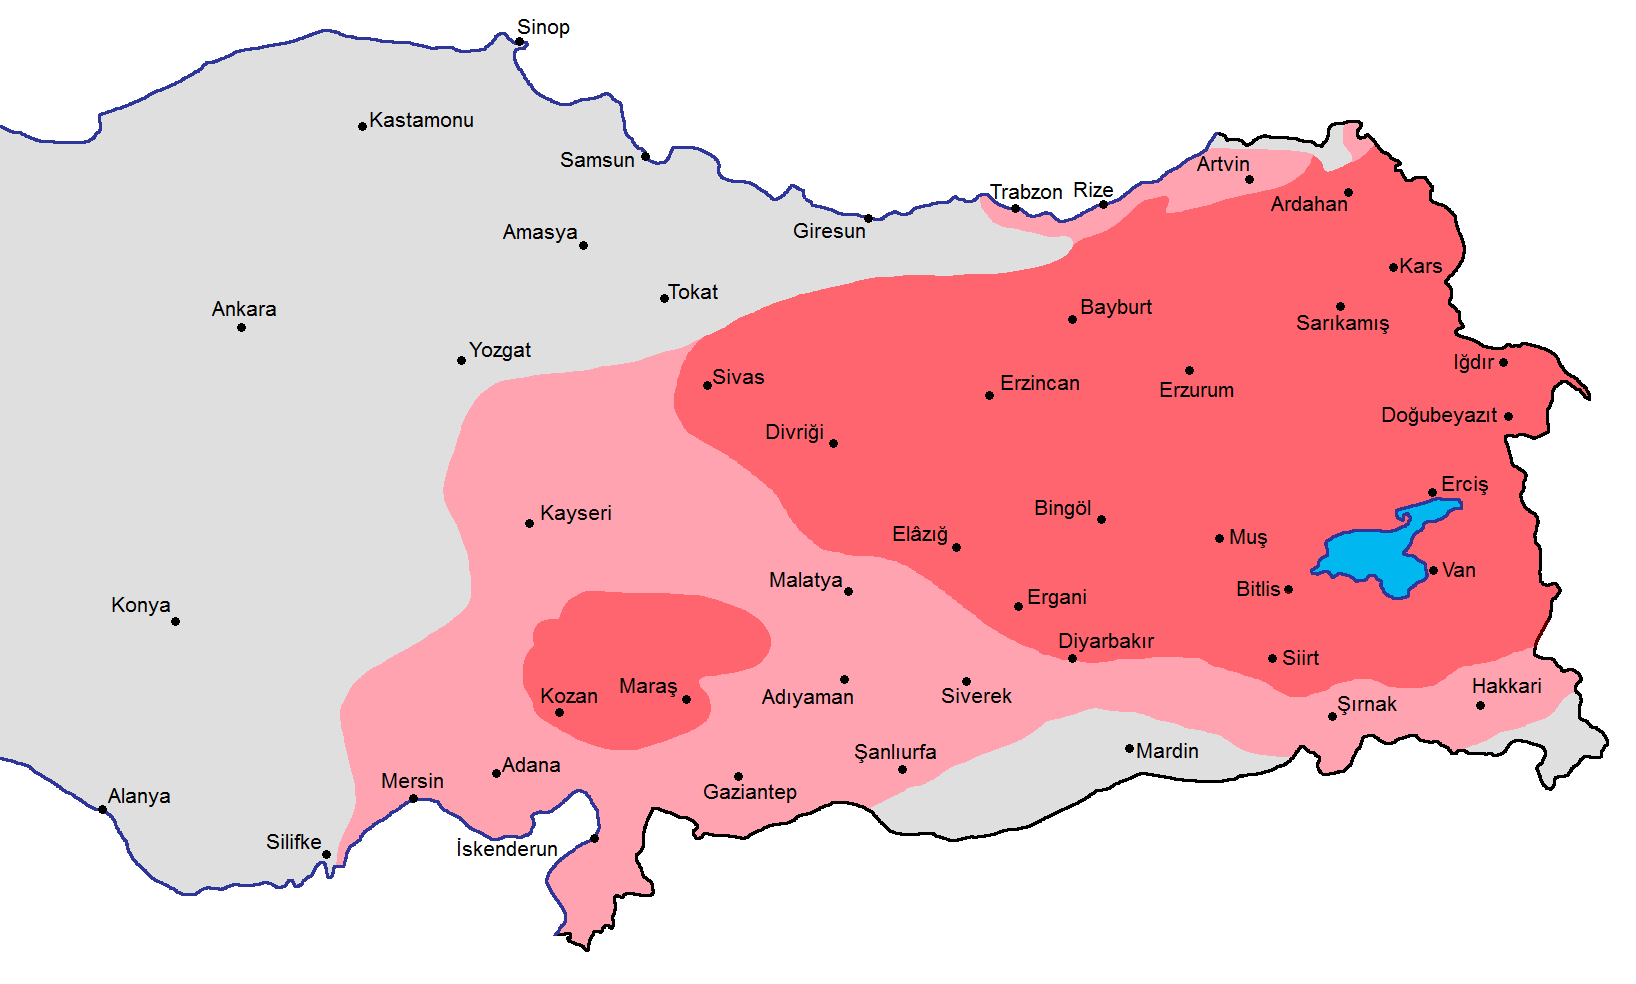 Armenian_presence_within_modern_Turkish_borders_in_early_1600s.png